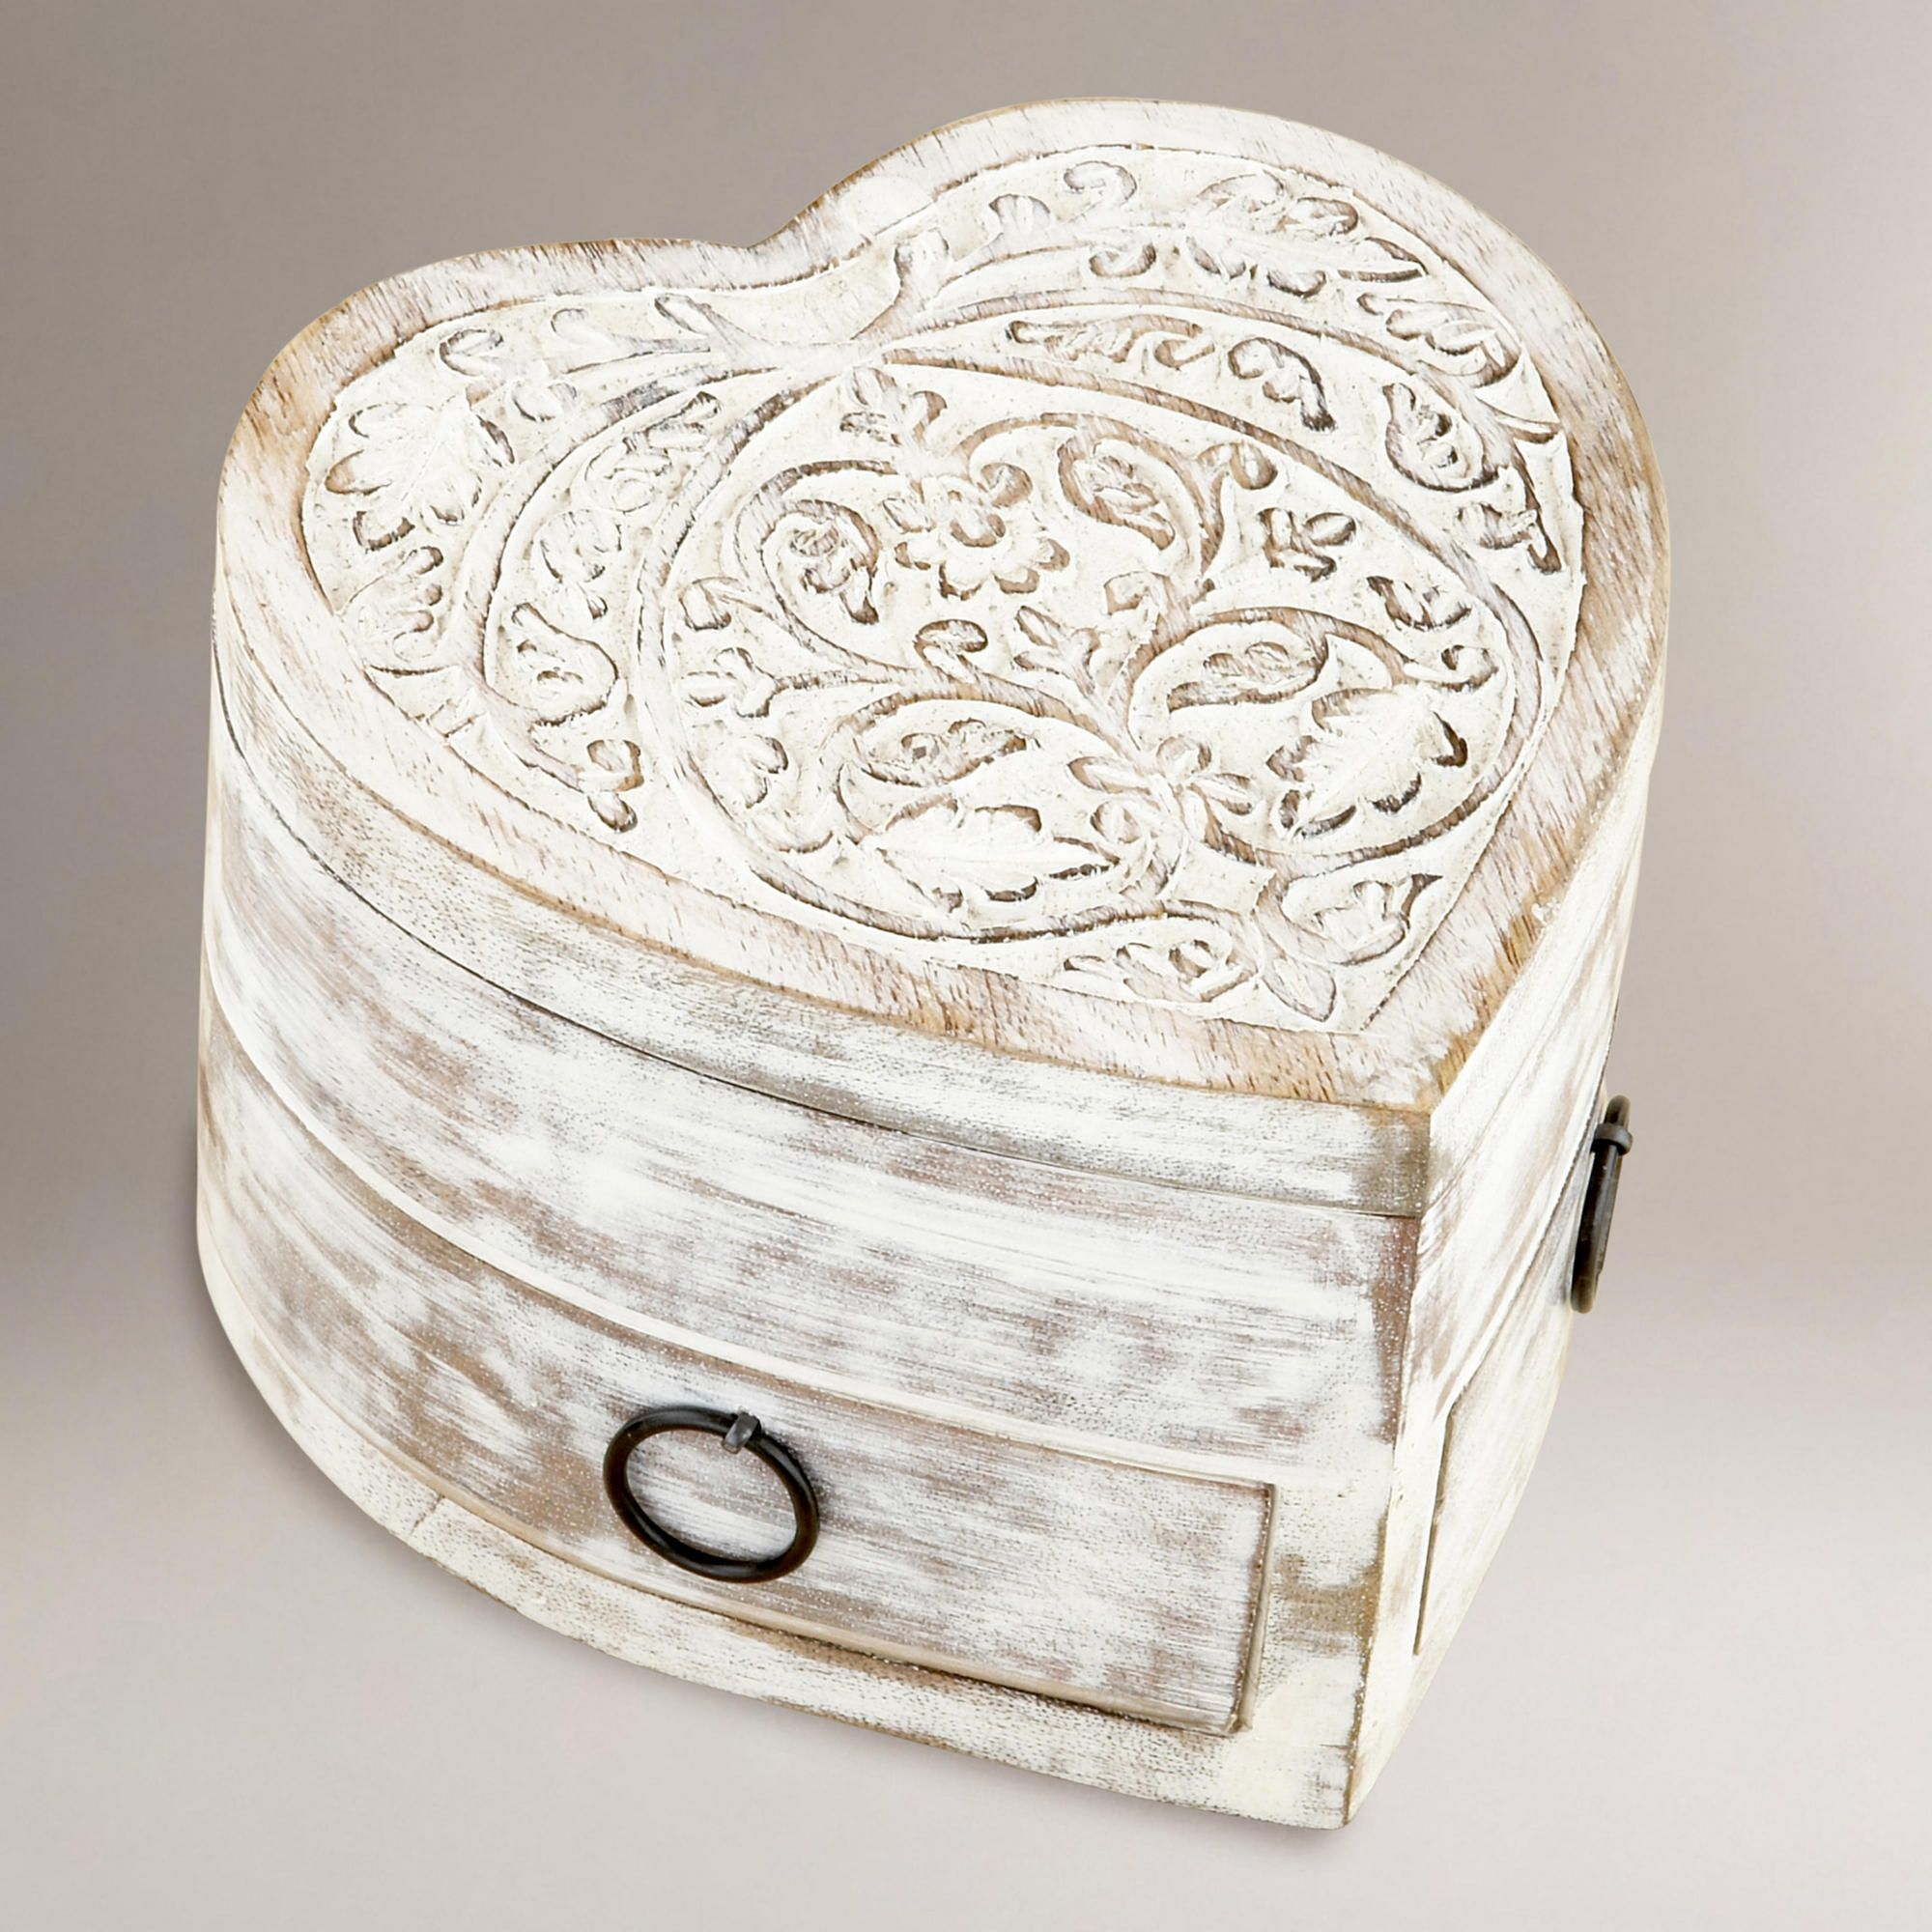 World Market Jewelry Box Entrancing White Helena Heart Jewelry Box With Drawers  World Market  Hearts Design Decoration